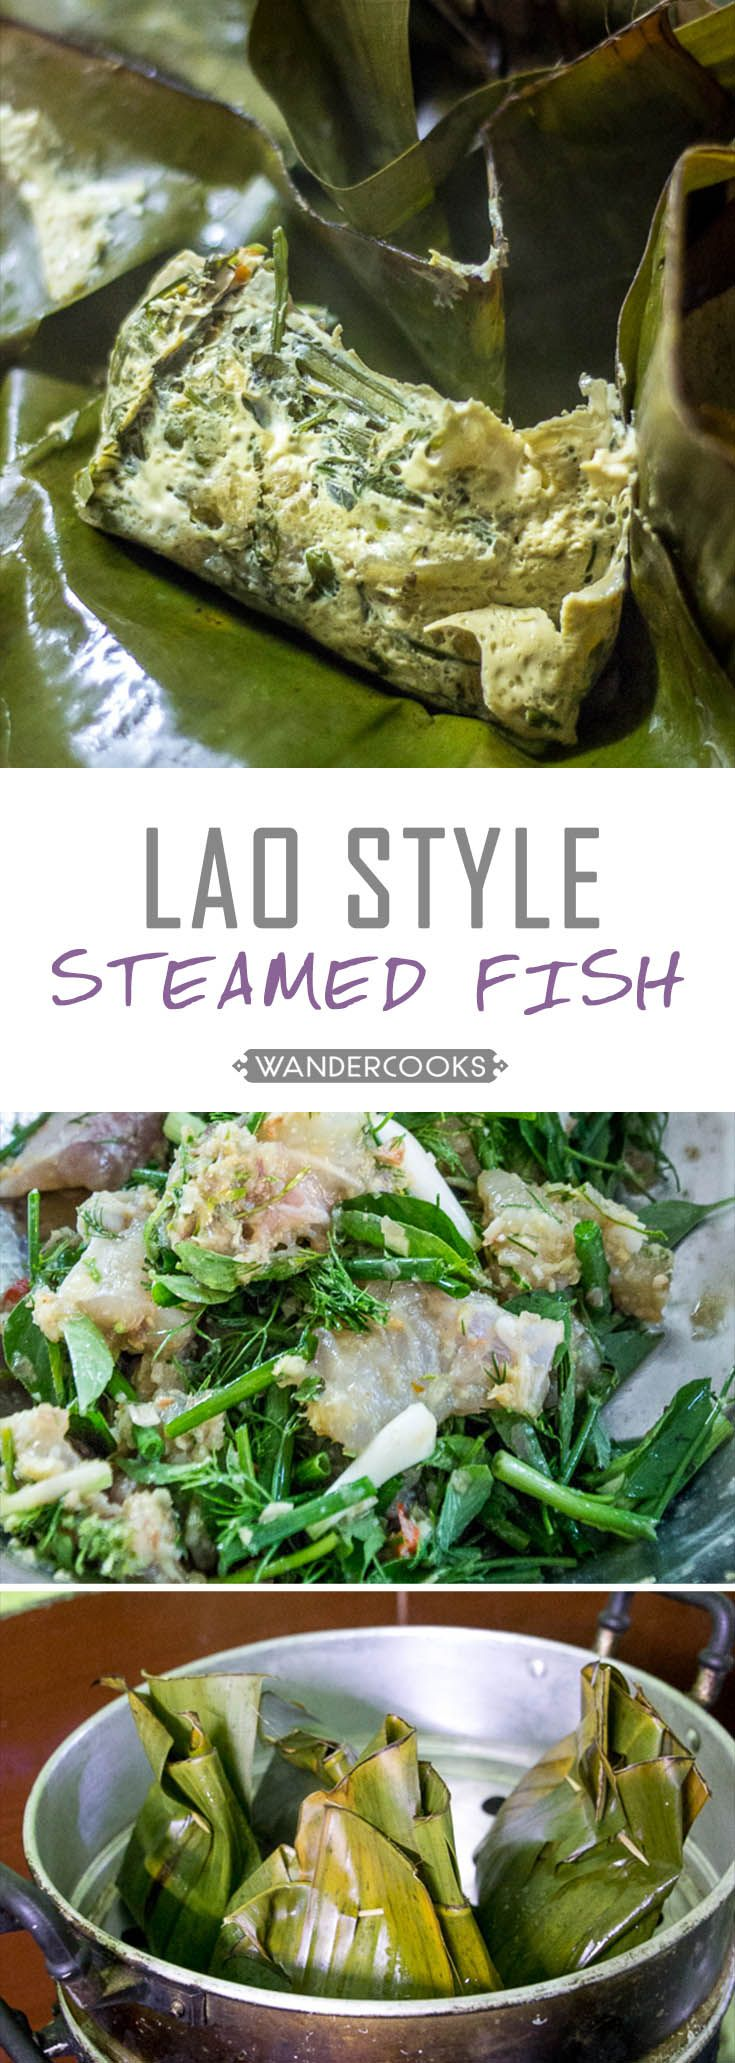 Lao Steamed Fish - Bursting fresh from the banana leaf, this flavour infused fish is melt-in-your-mouth goodness. Gluten free. | wandercooks.com